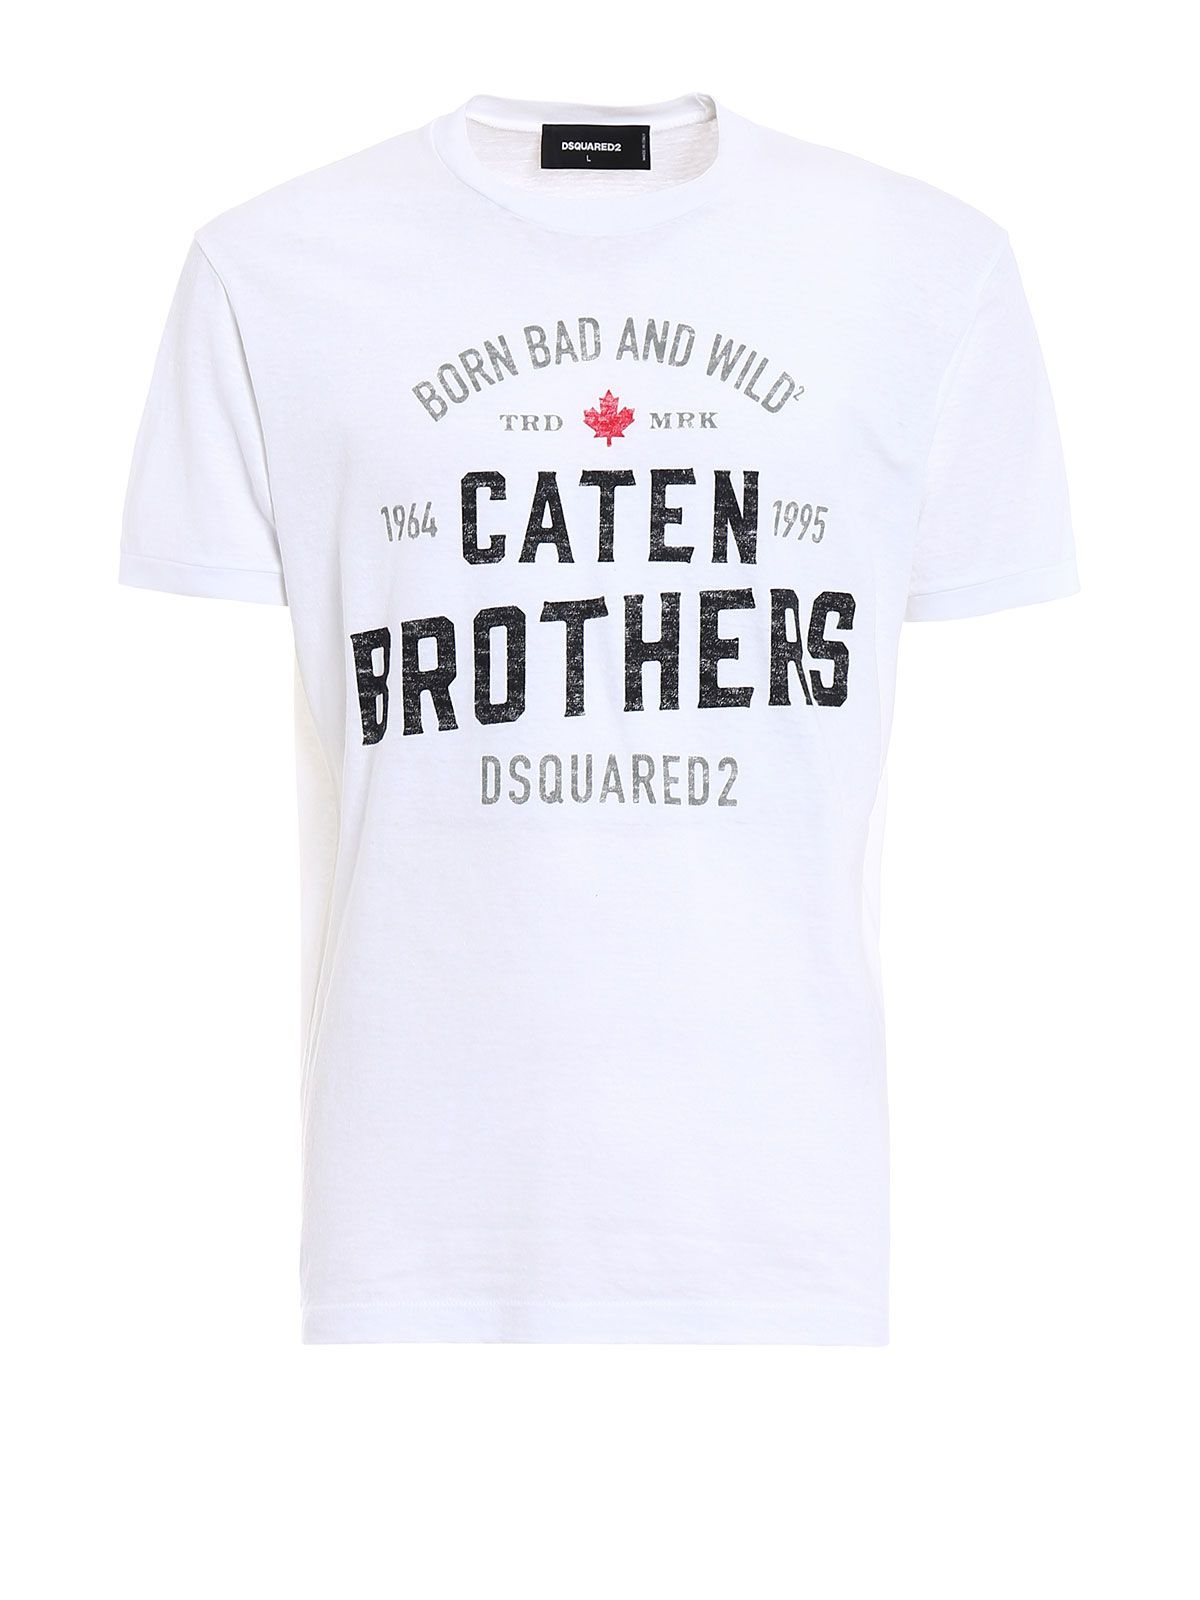 Dsquared2 caten Brothers T-shirt